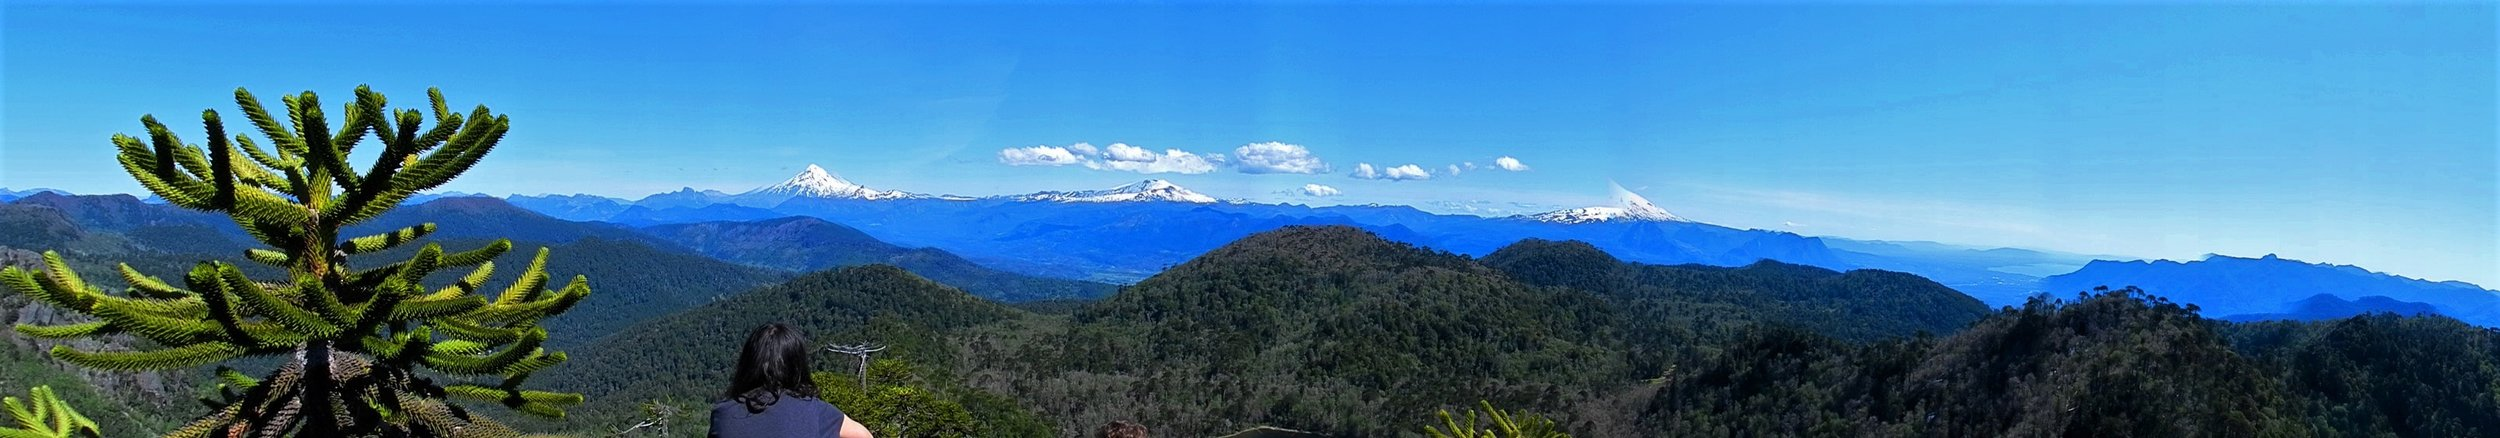 2012 - Mirador el Cani, with a view of 3 snow-capped volcanoes and an Araucaria forest, near Pucon, Chile